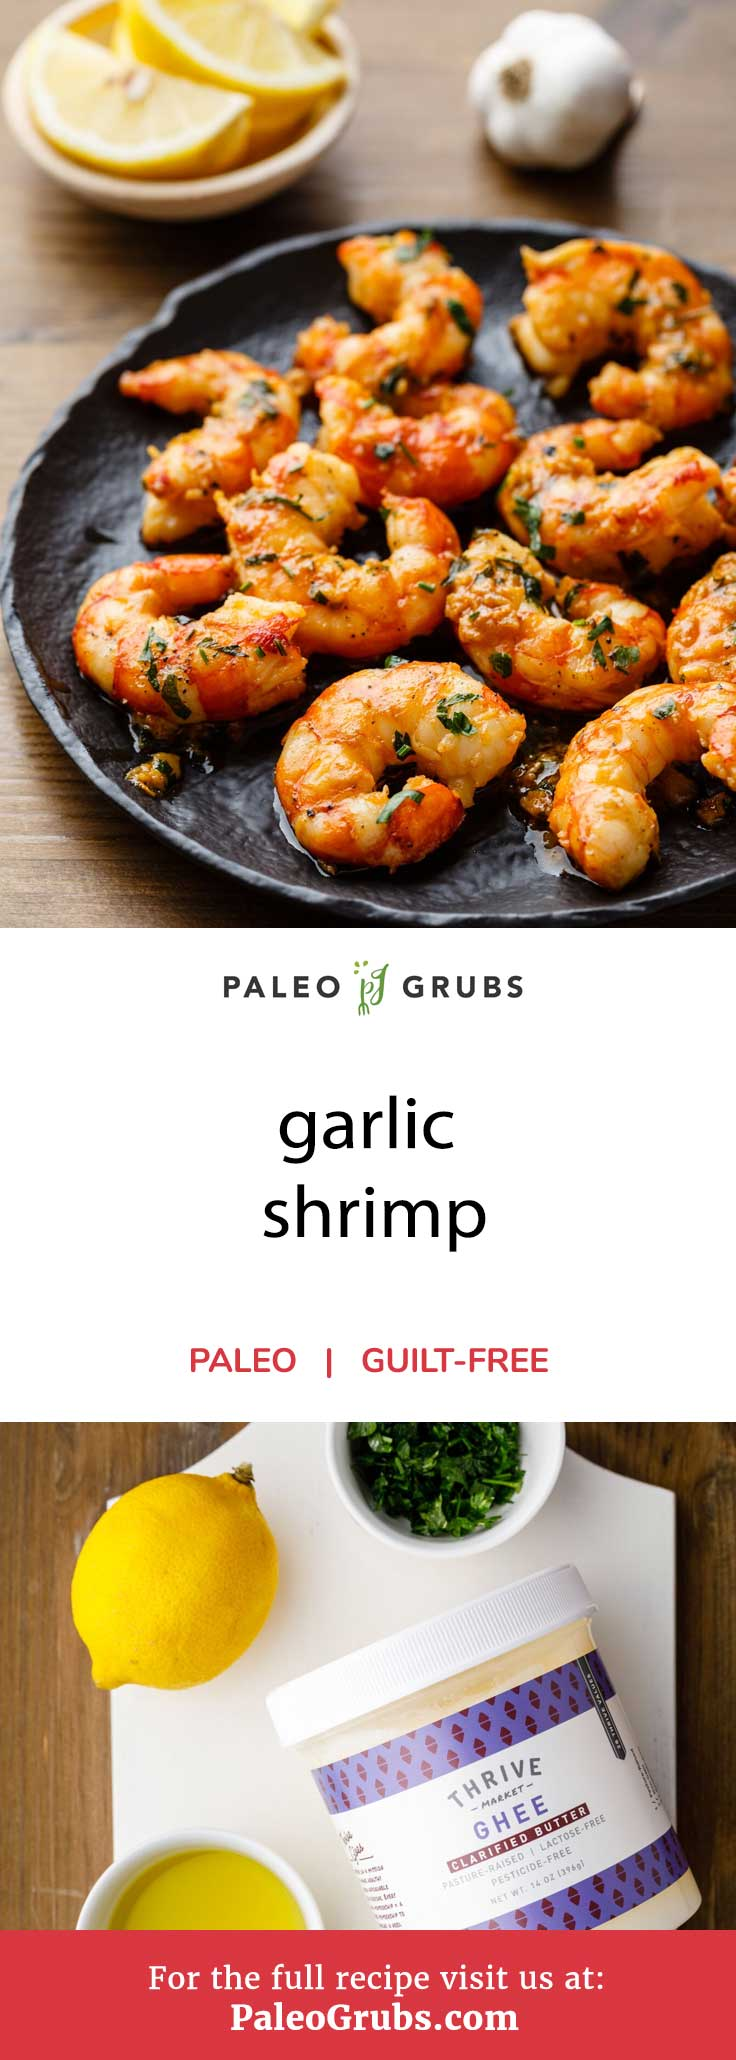 Shrimp are one of the best sources of seafood to include in your paleo diet as they are an excellent protein source while containing tons of other nutrients. Garlic is equally good for paleo followers thanks to the many, many health boosting properties that it possesses. This recipe takes these two great ingredients and makes delicious garlic shrimp that seafood and paleo lovers will go nuts for.